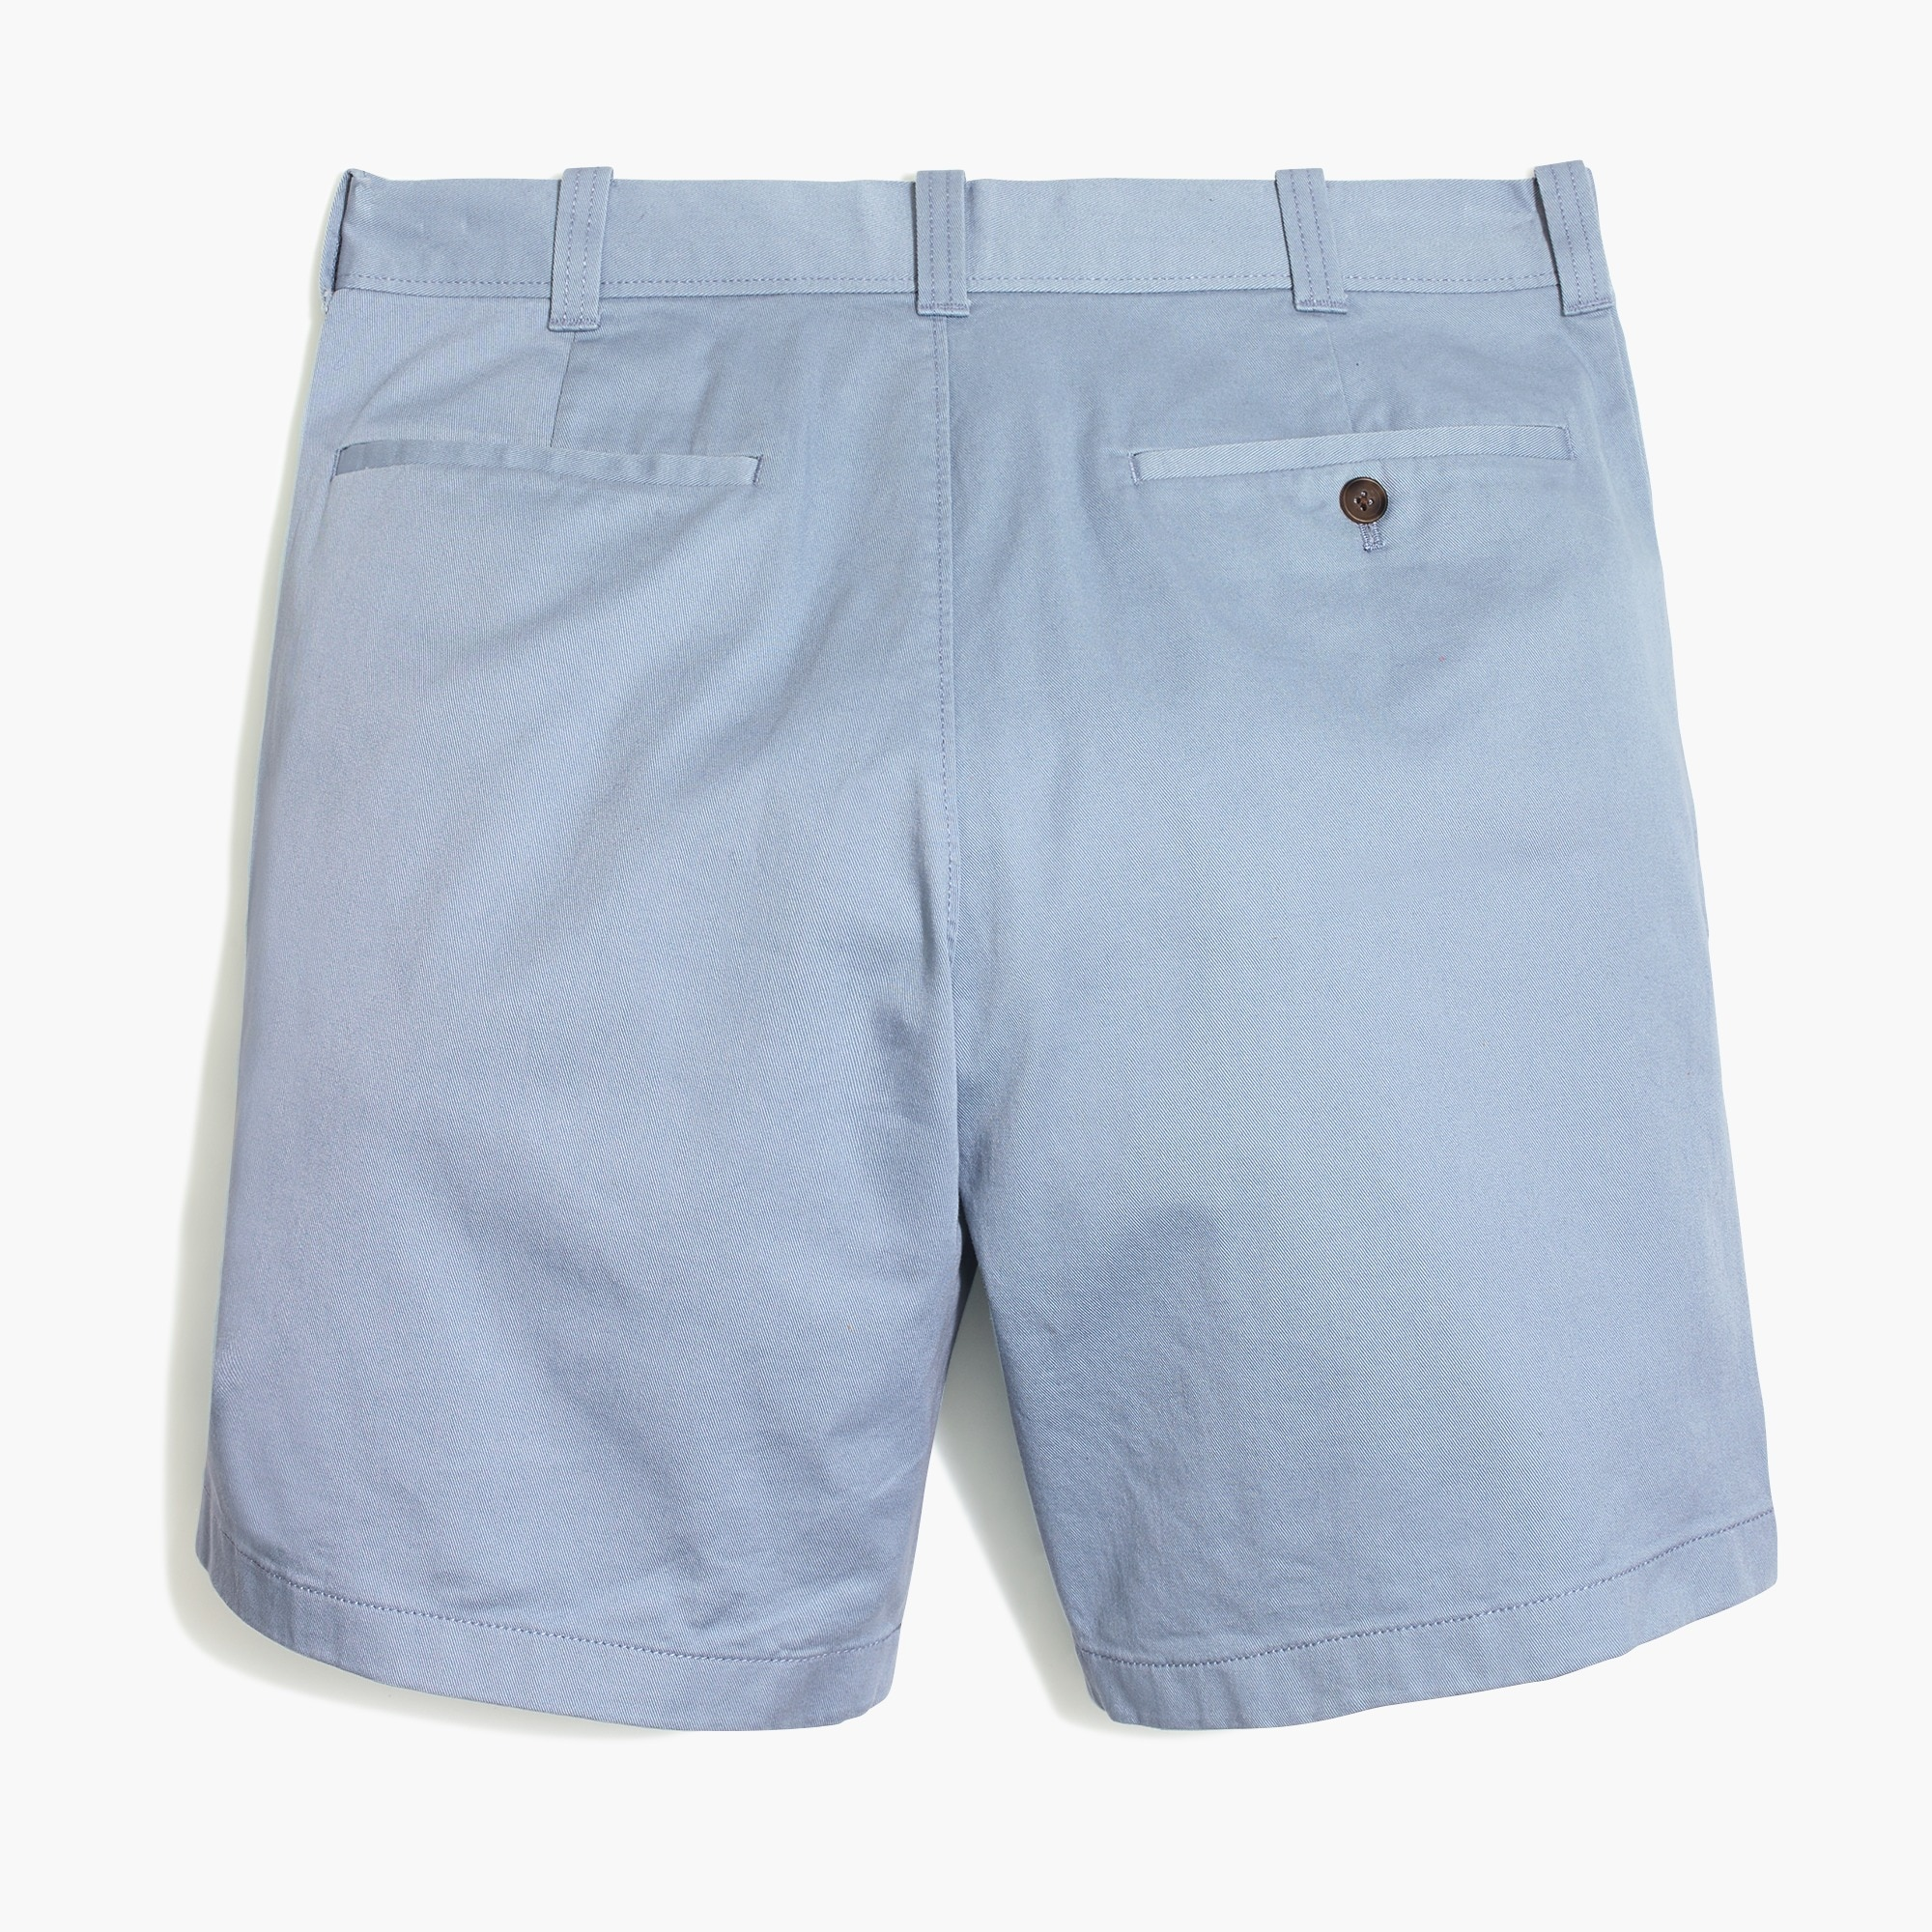 "Image 4 for 9"" Gramercy flex chino short"